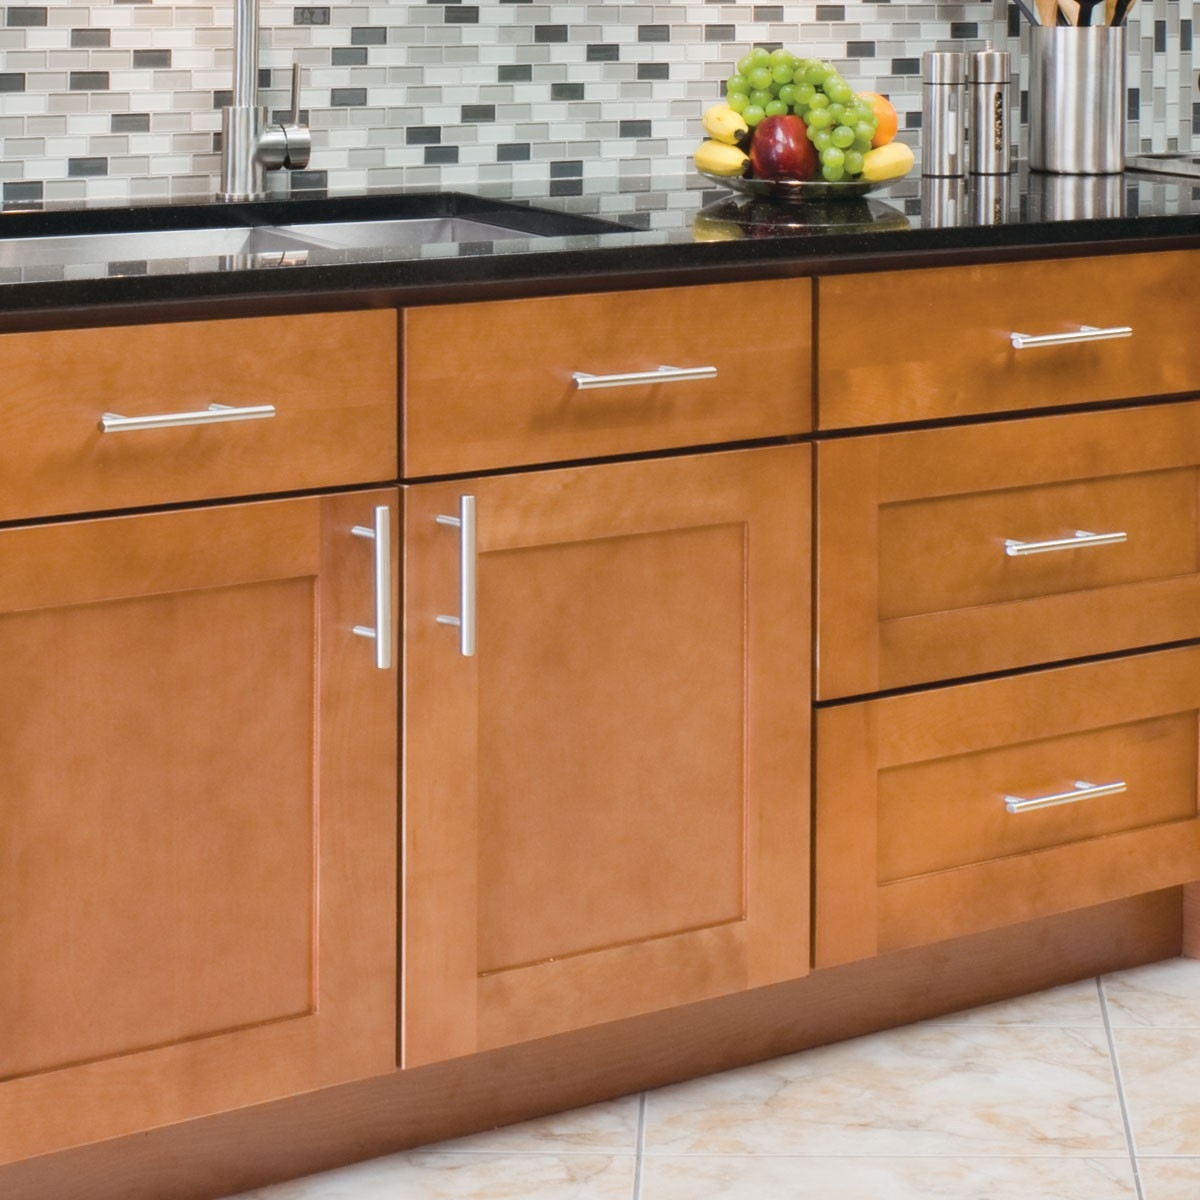 Kitchen Cabinets Pulls And Handles